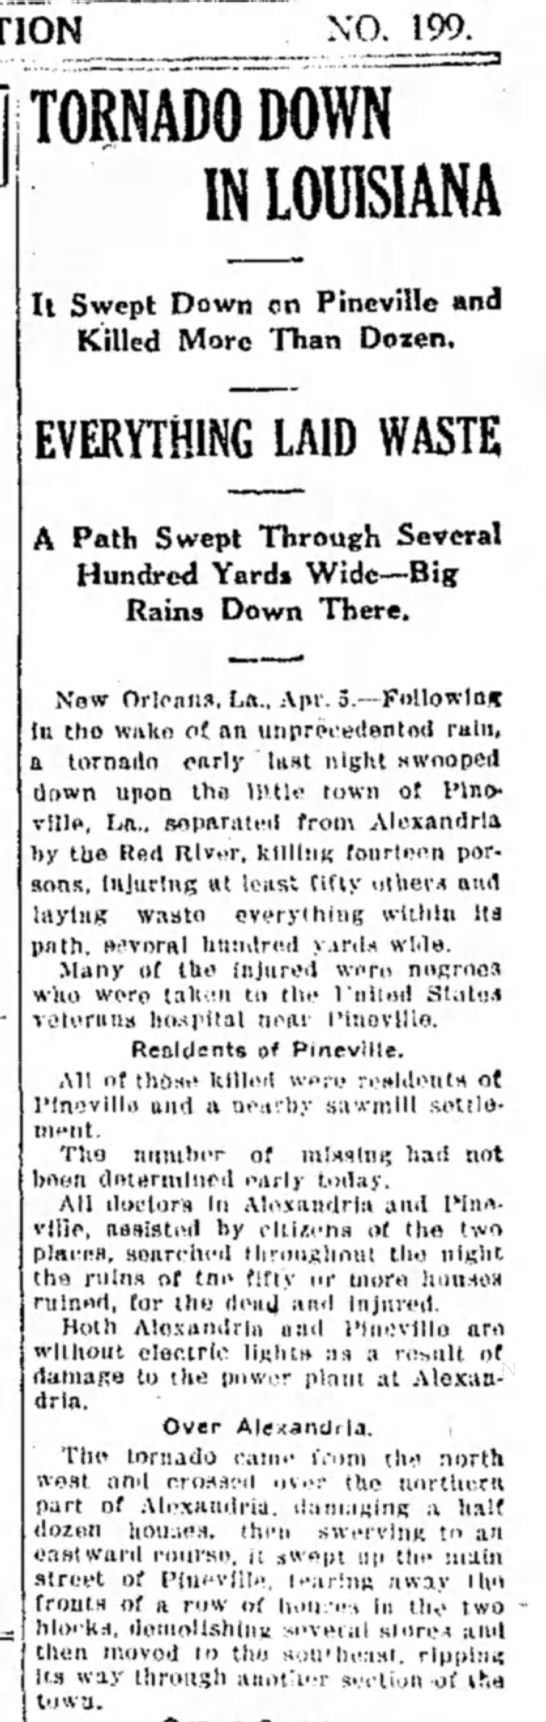 1923 Tornado in Alexandria and Pineville, LA. - Tom Malmay - NO. 199. TORNADO DOWN IN LOUISIANA It Swept...